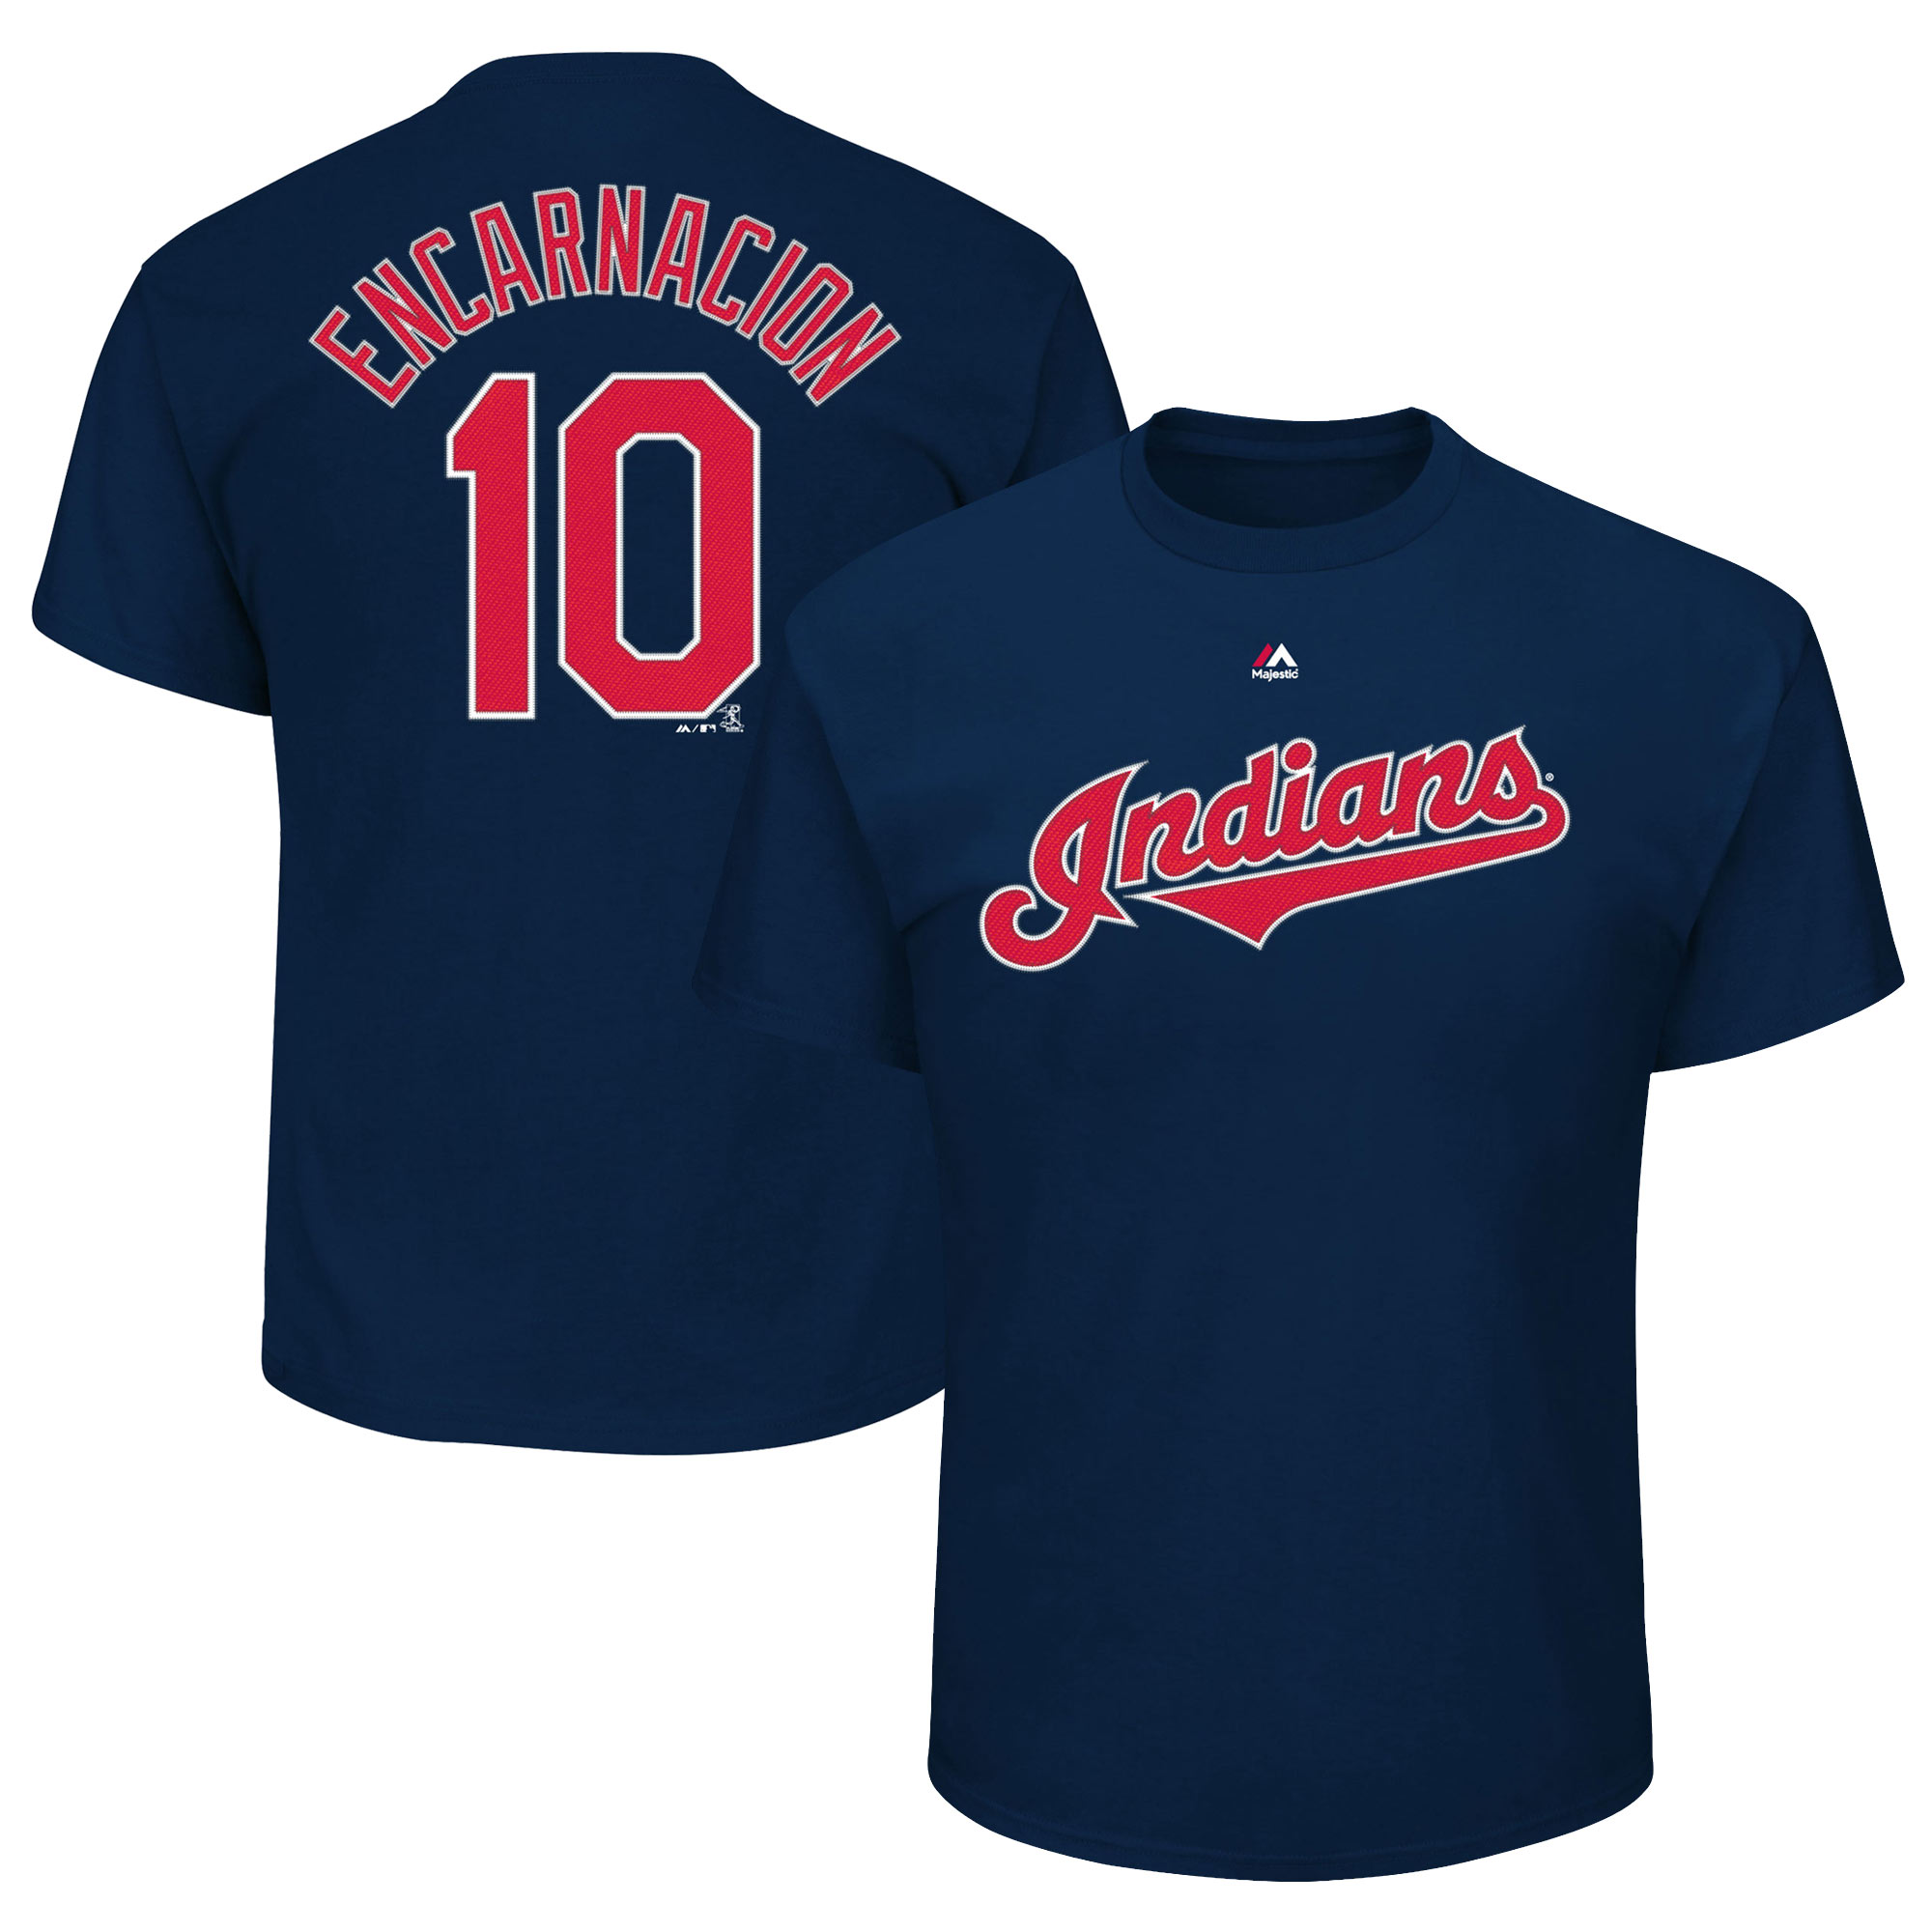 Edwin Encarnacion Cleveland Indians Majestic Youth Player Name & Number T-Shirt - Navy